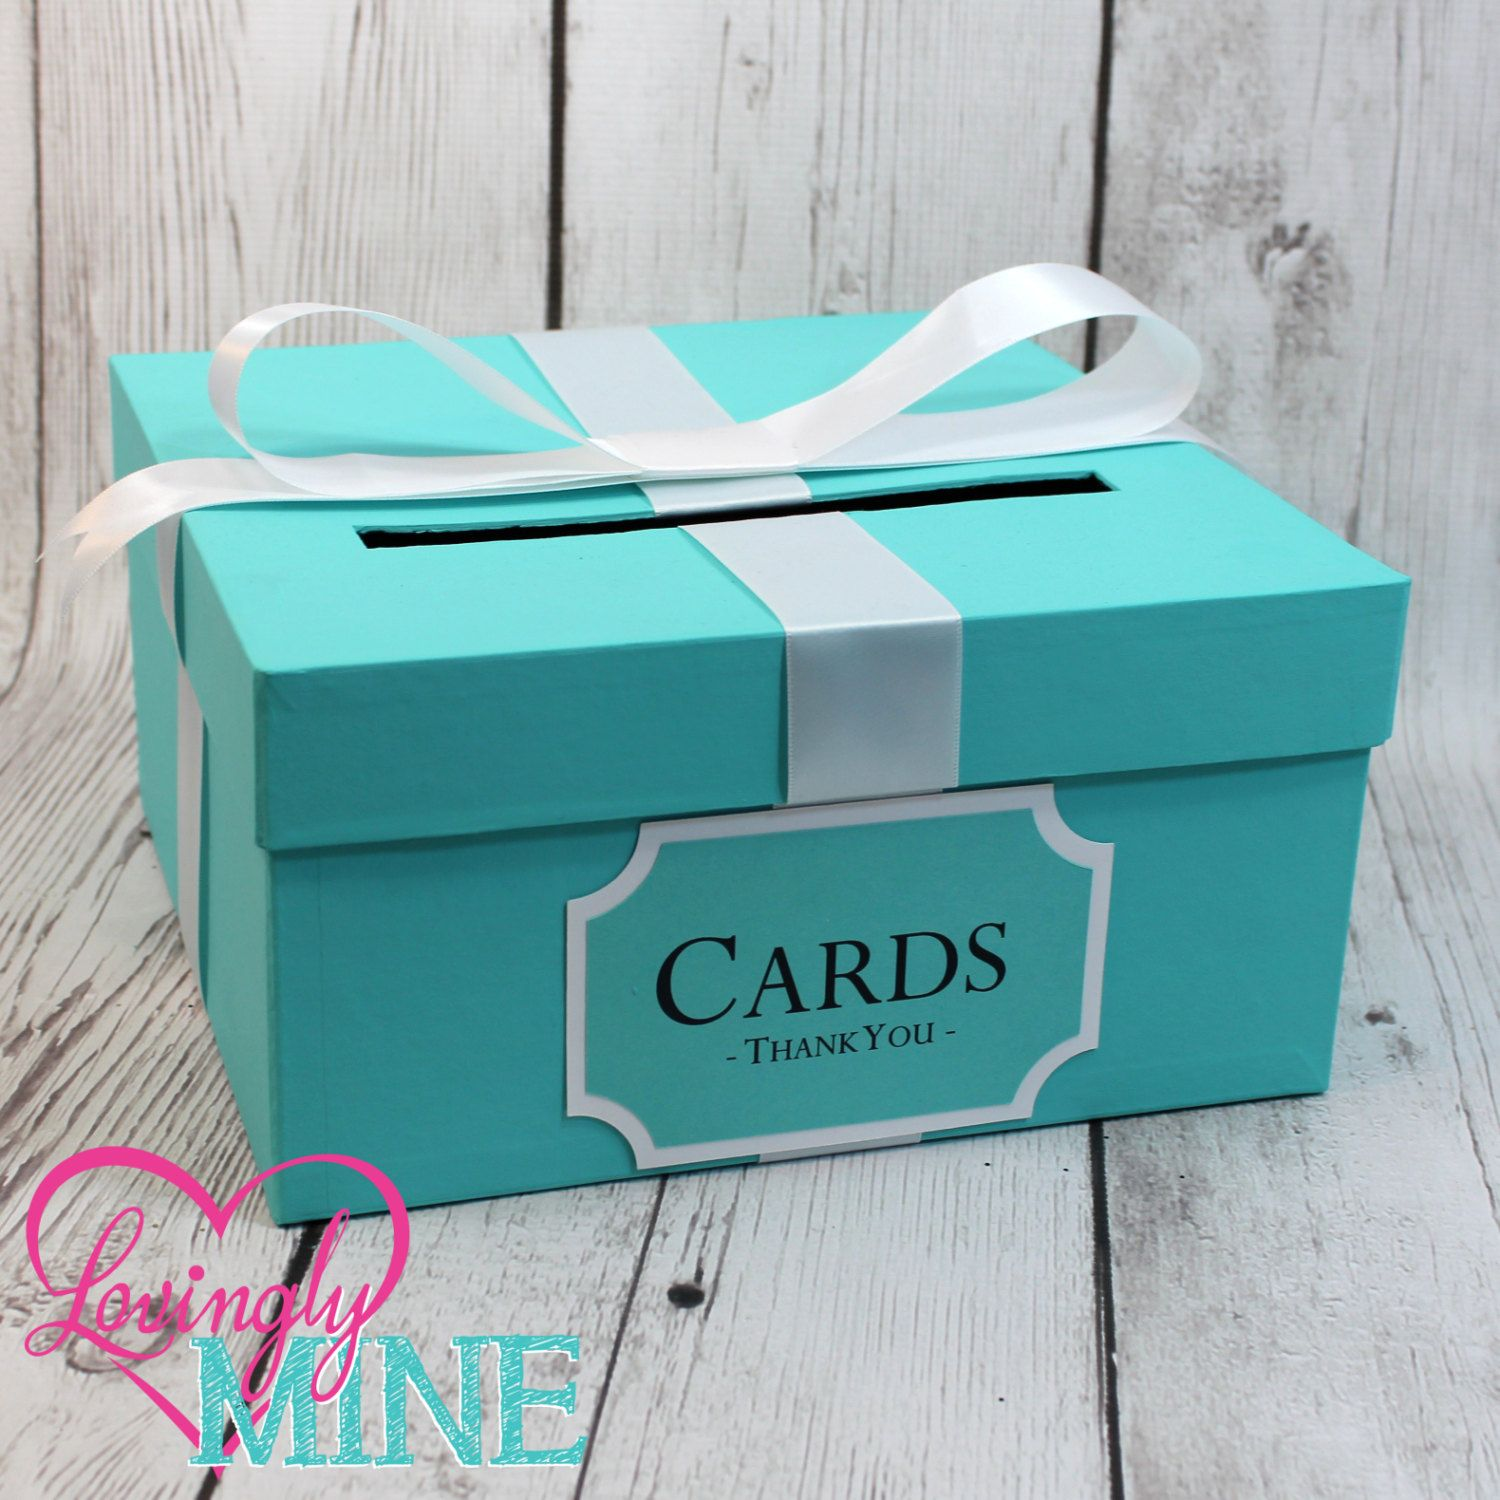 Card Holder Box With Sign In Light Teal White Gift Money For Any Event Wedding Bridal Shower Birthday Baby Engagement